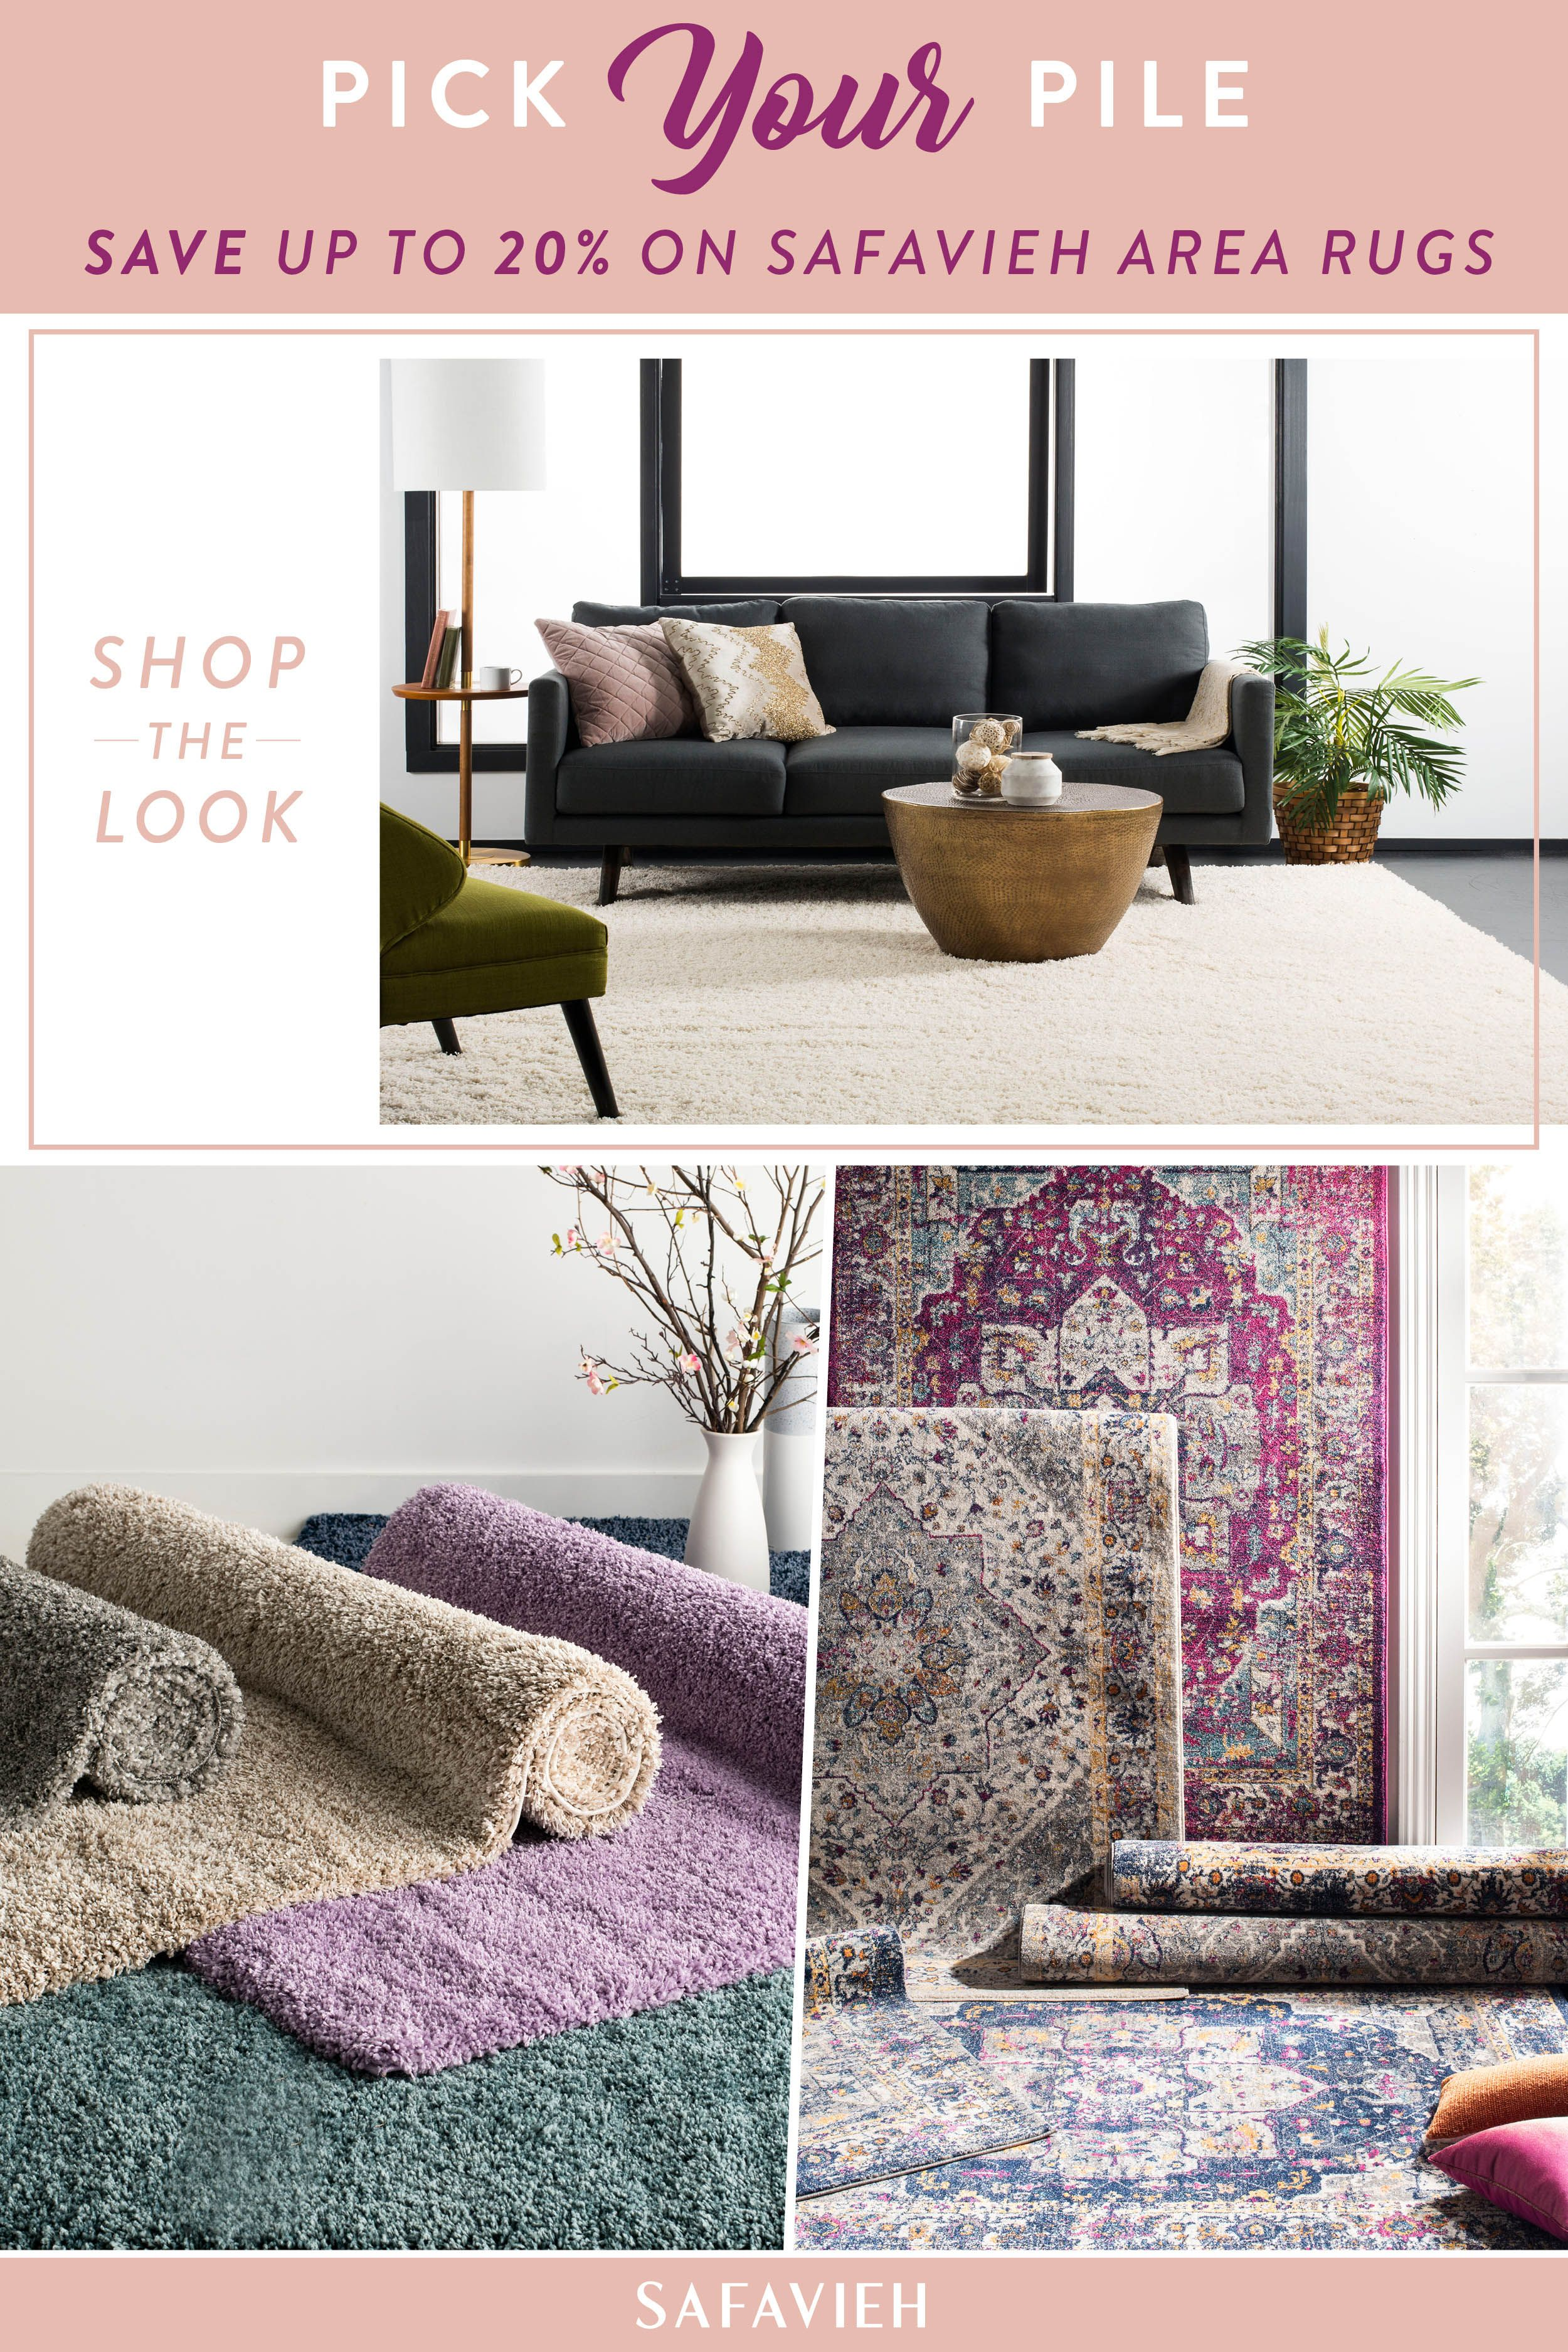 692abf21aad6 Save up to 20% on stylish Safavieh area rugs - Now at The Home Depot!  Indulge your decor in the latest trend-setting designs from Safavieh.